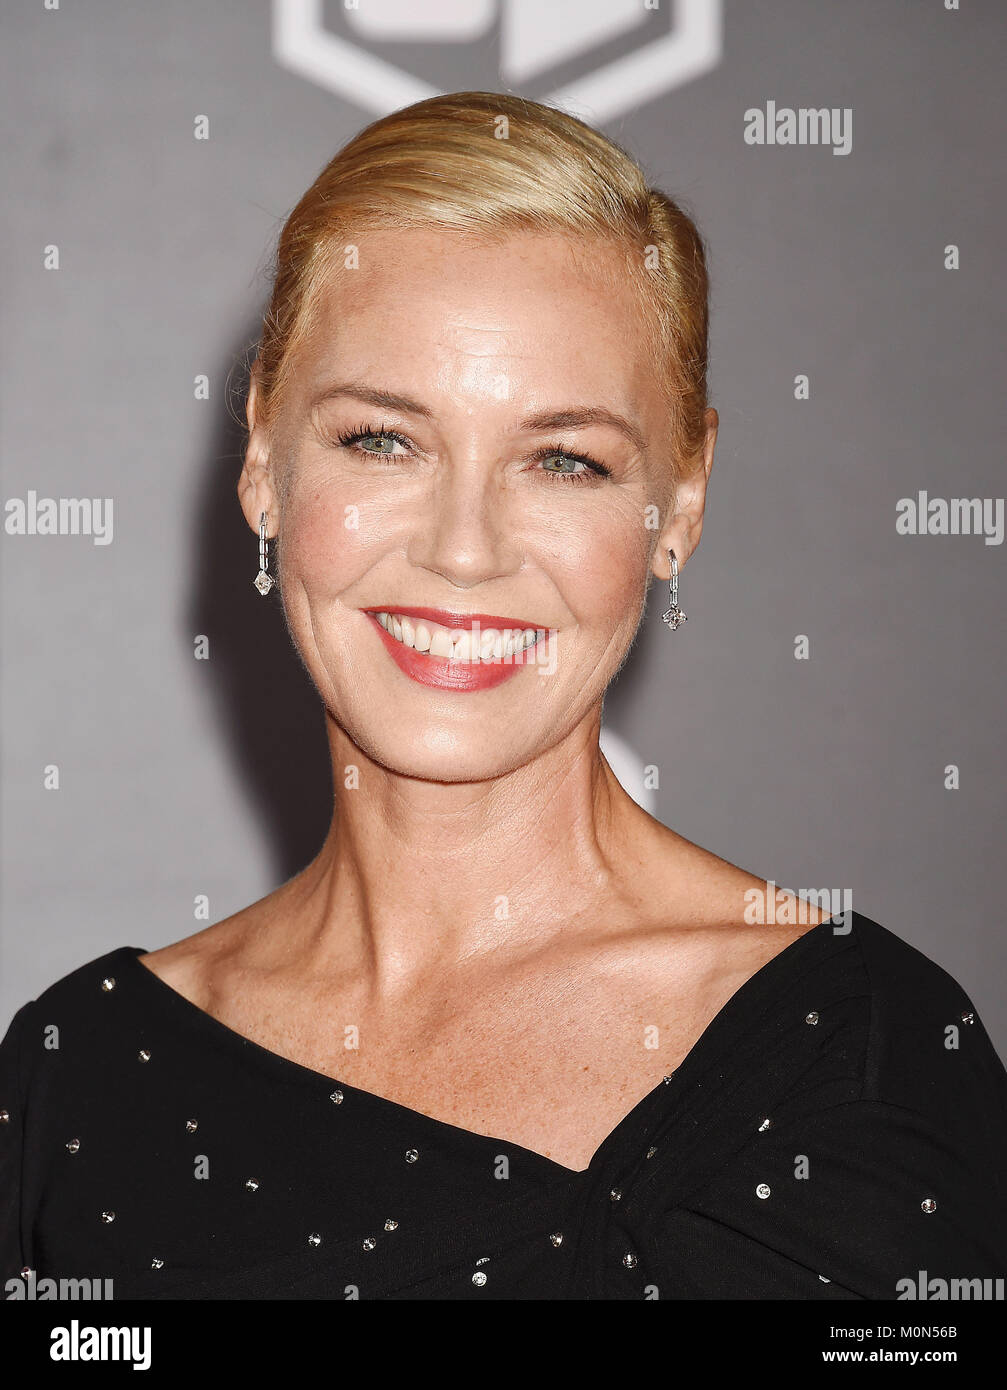 CONNIE NIELSON  US film actress arrives at the Premiere Of Warner Bros. Pictures' 'Justice League' at - Stock Image